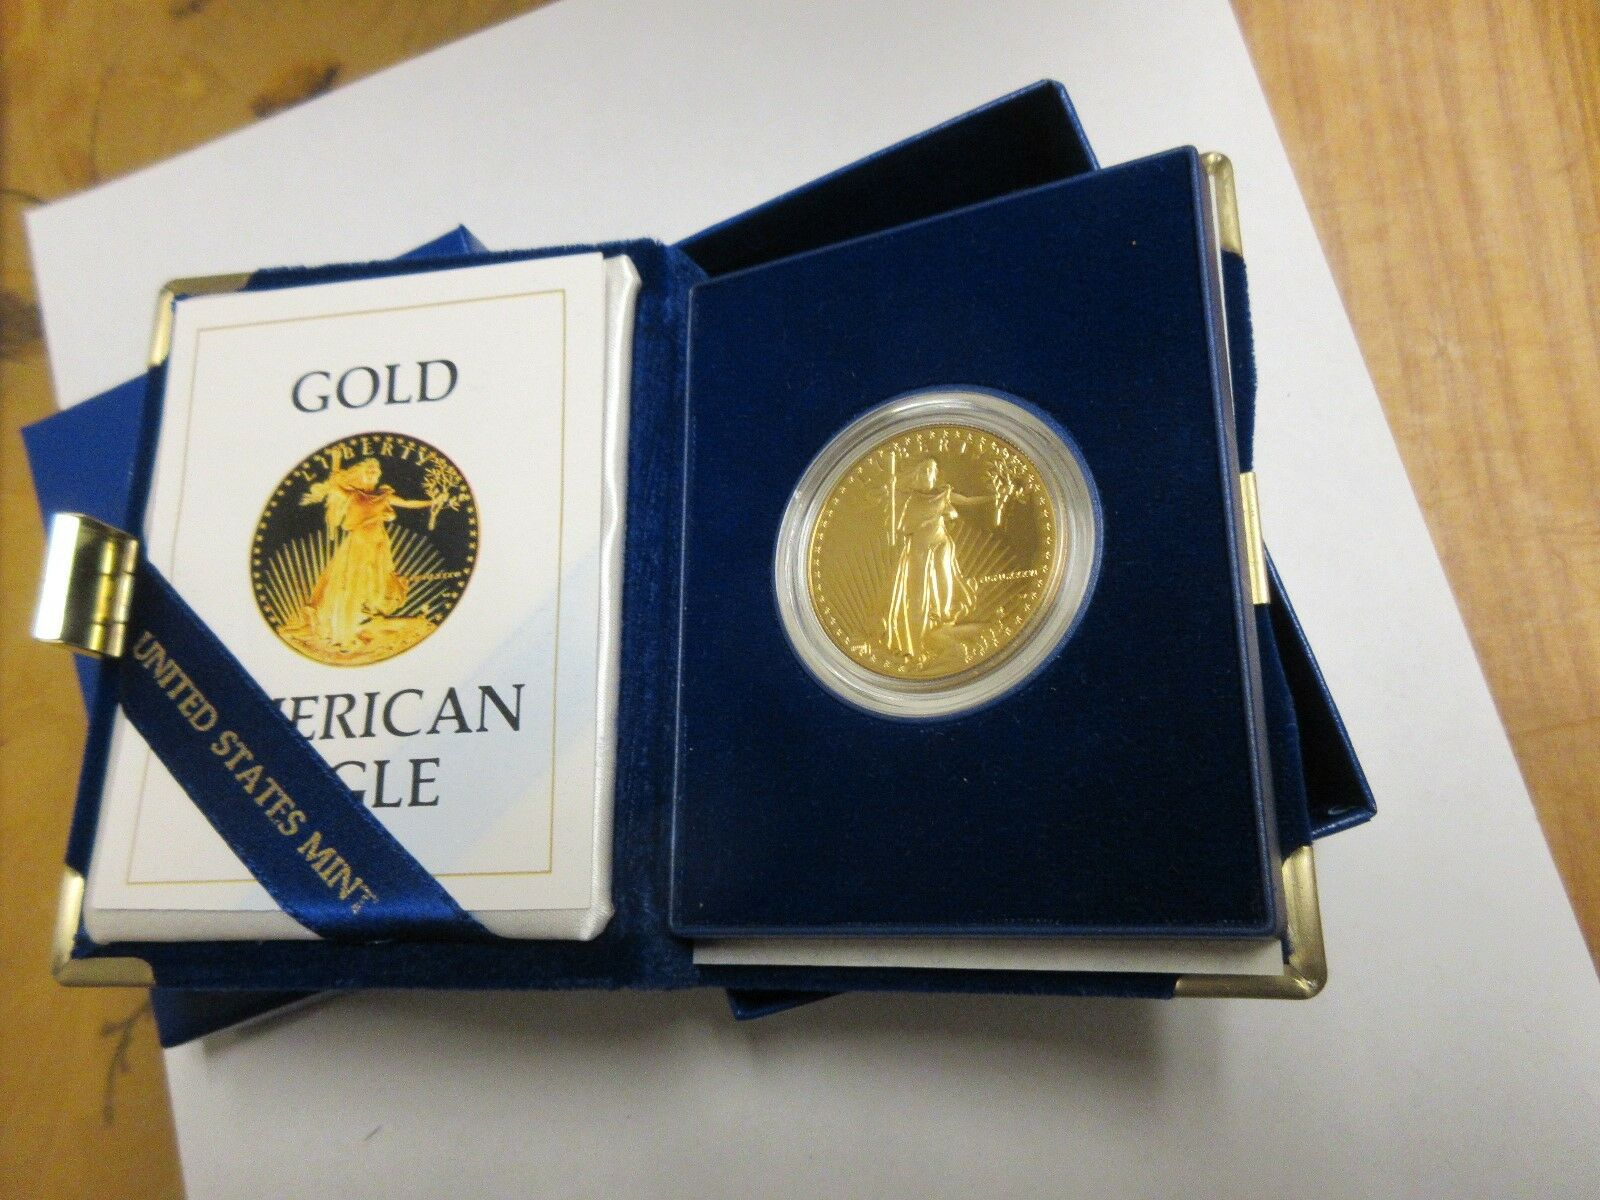 1986 American Eagle Gold Proof One Ounce $50 Gold Bulli